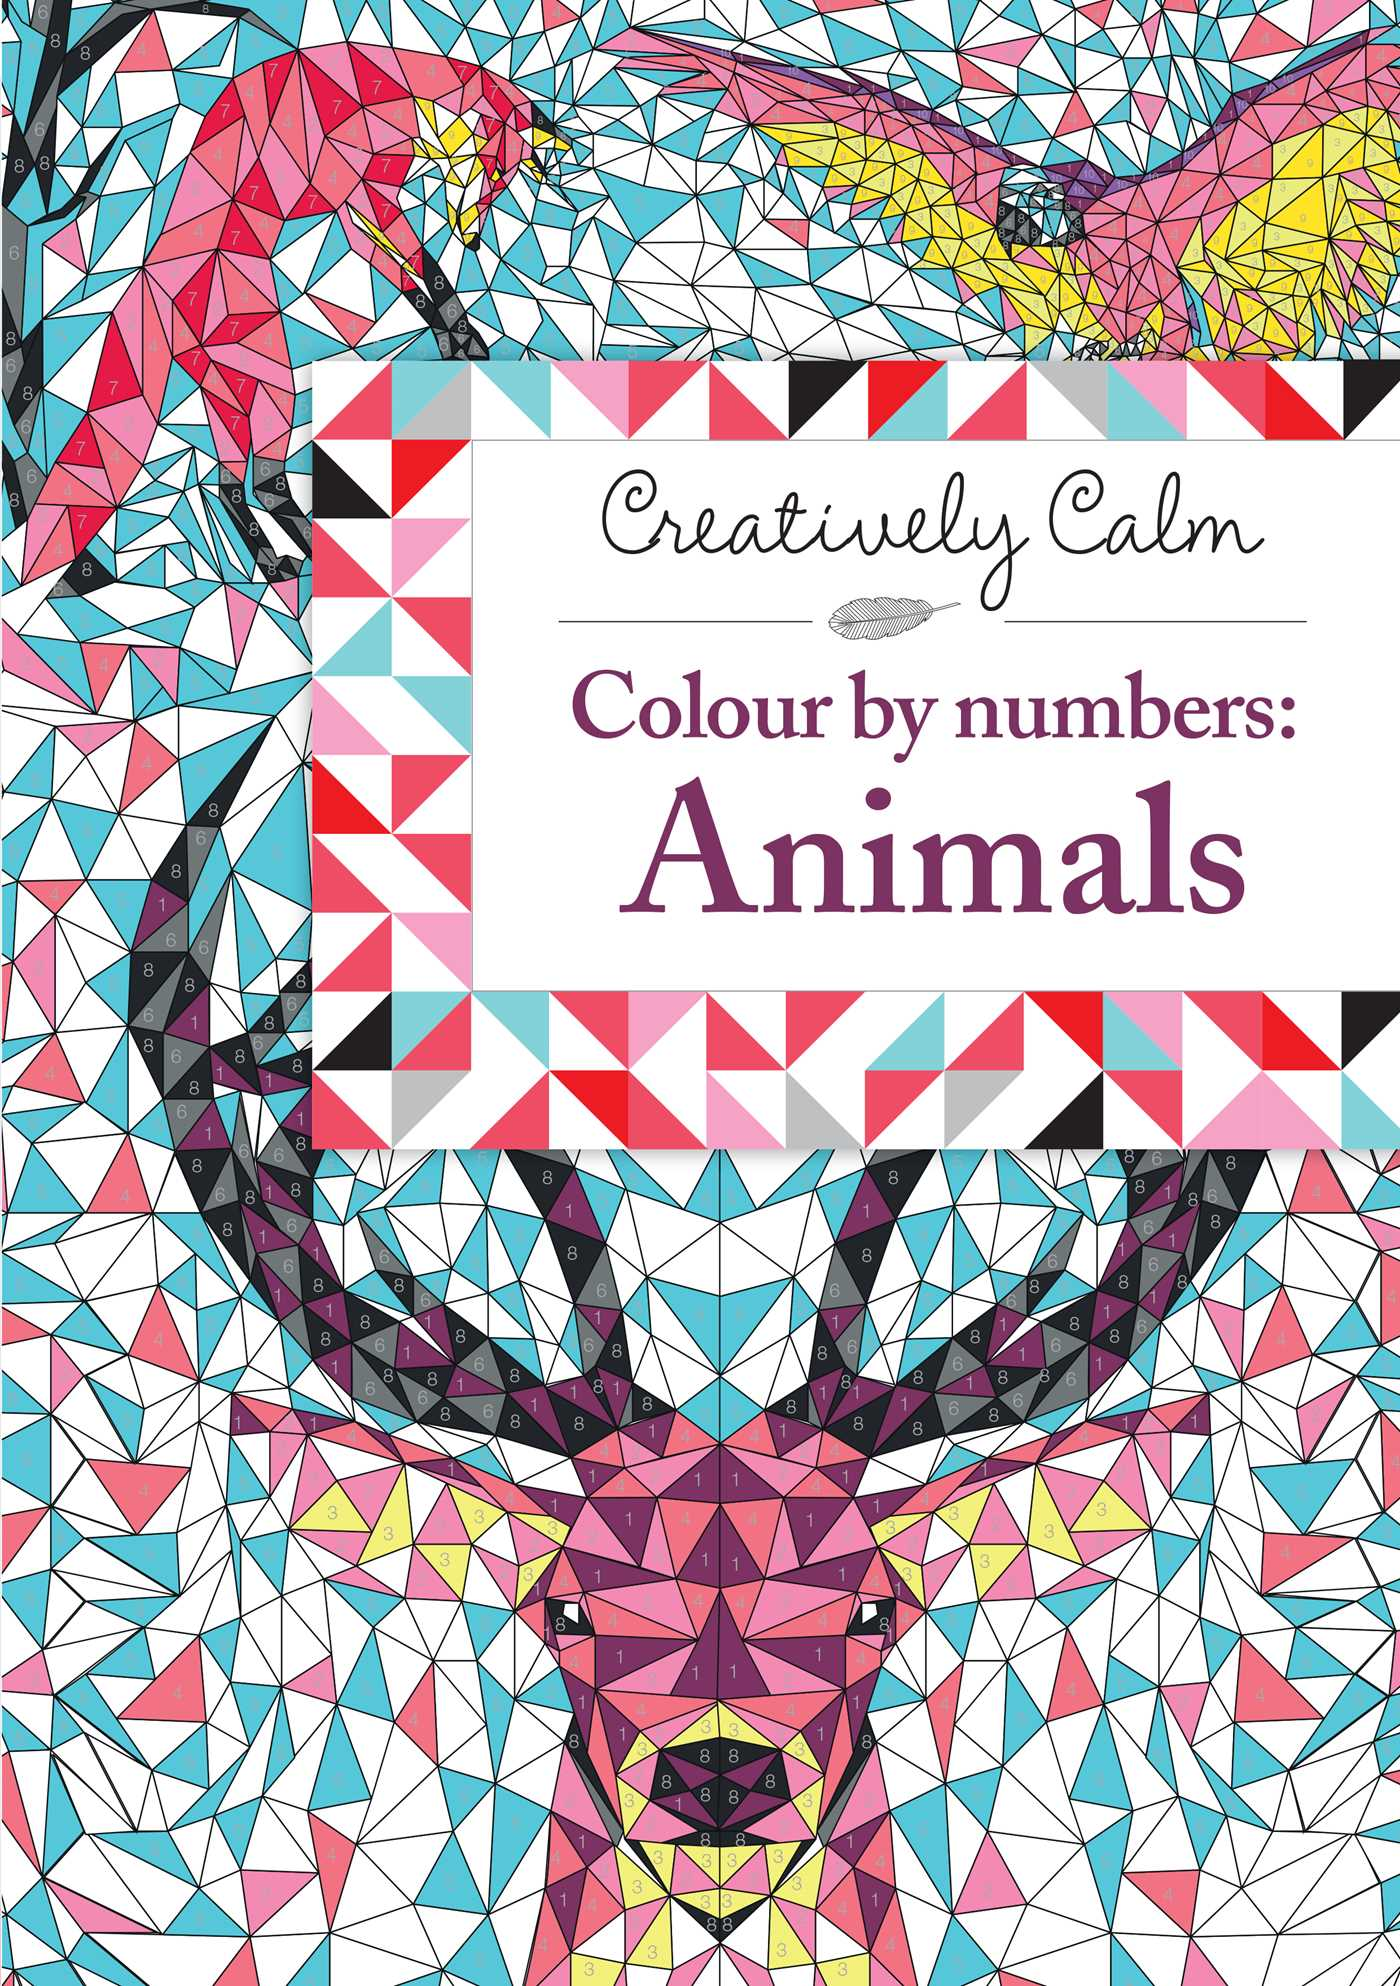 creatively calm colour by numbers animals book by fred kucia